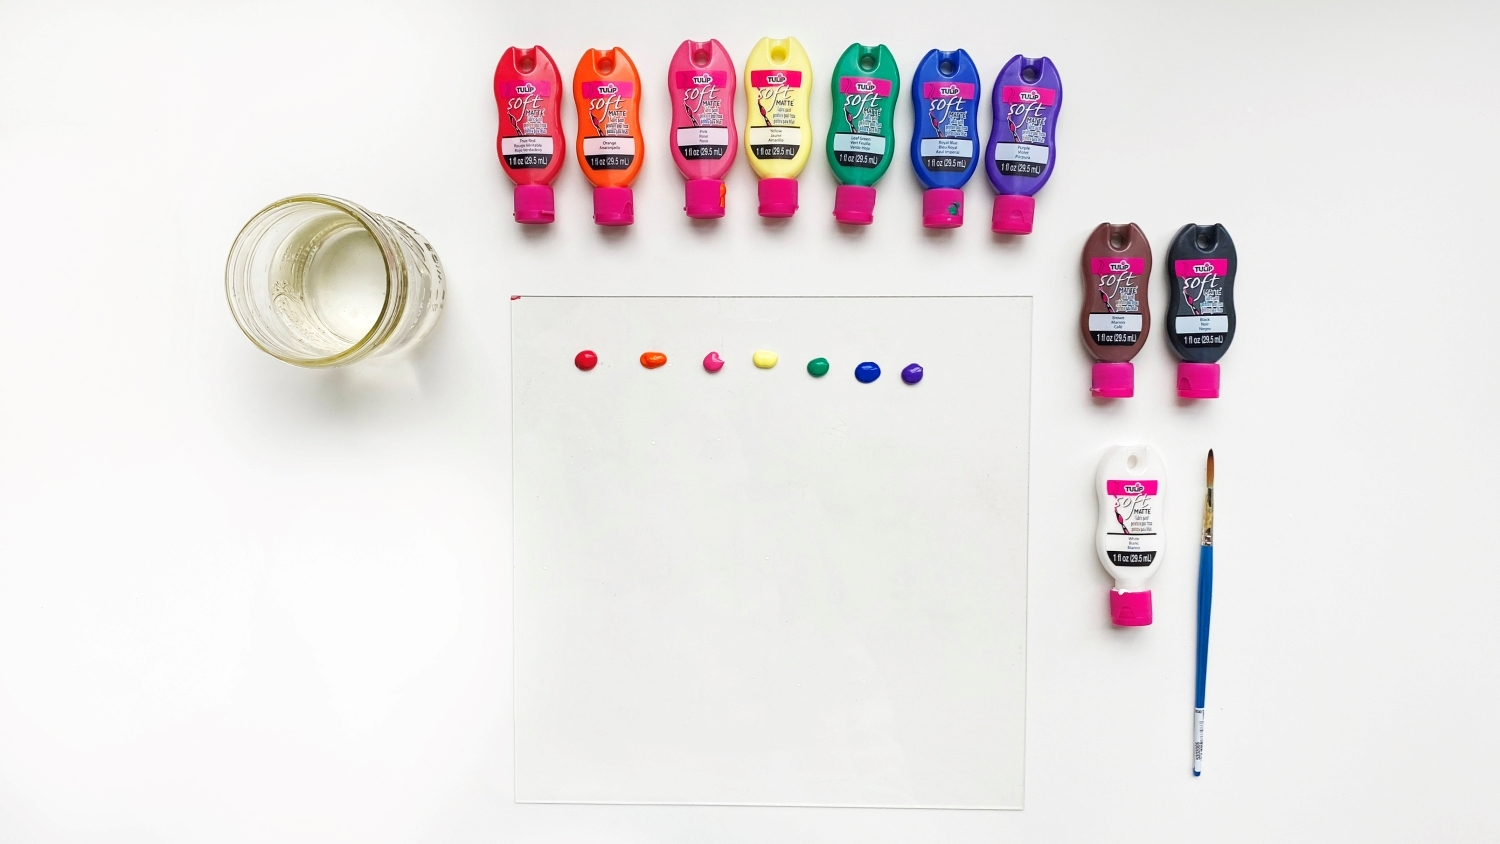 Squeeze your paint onto the palette